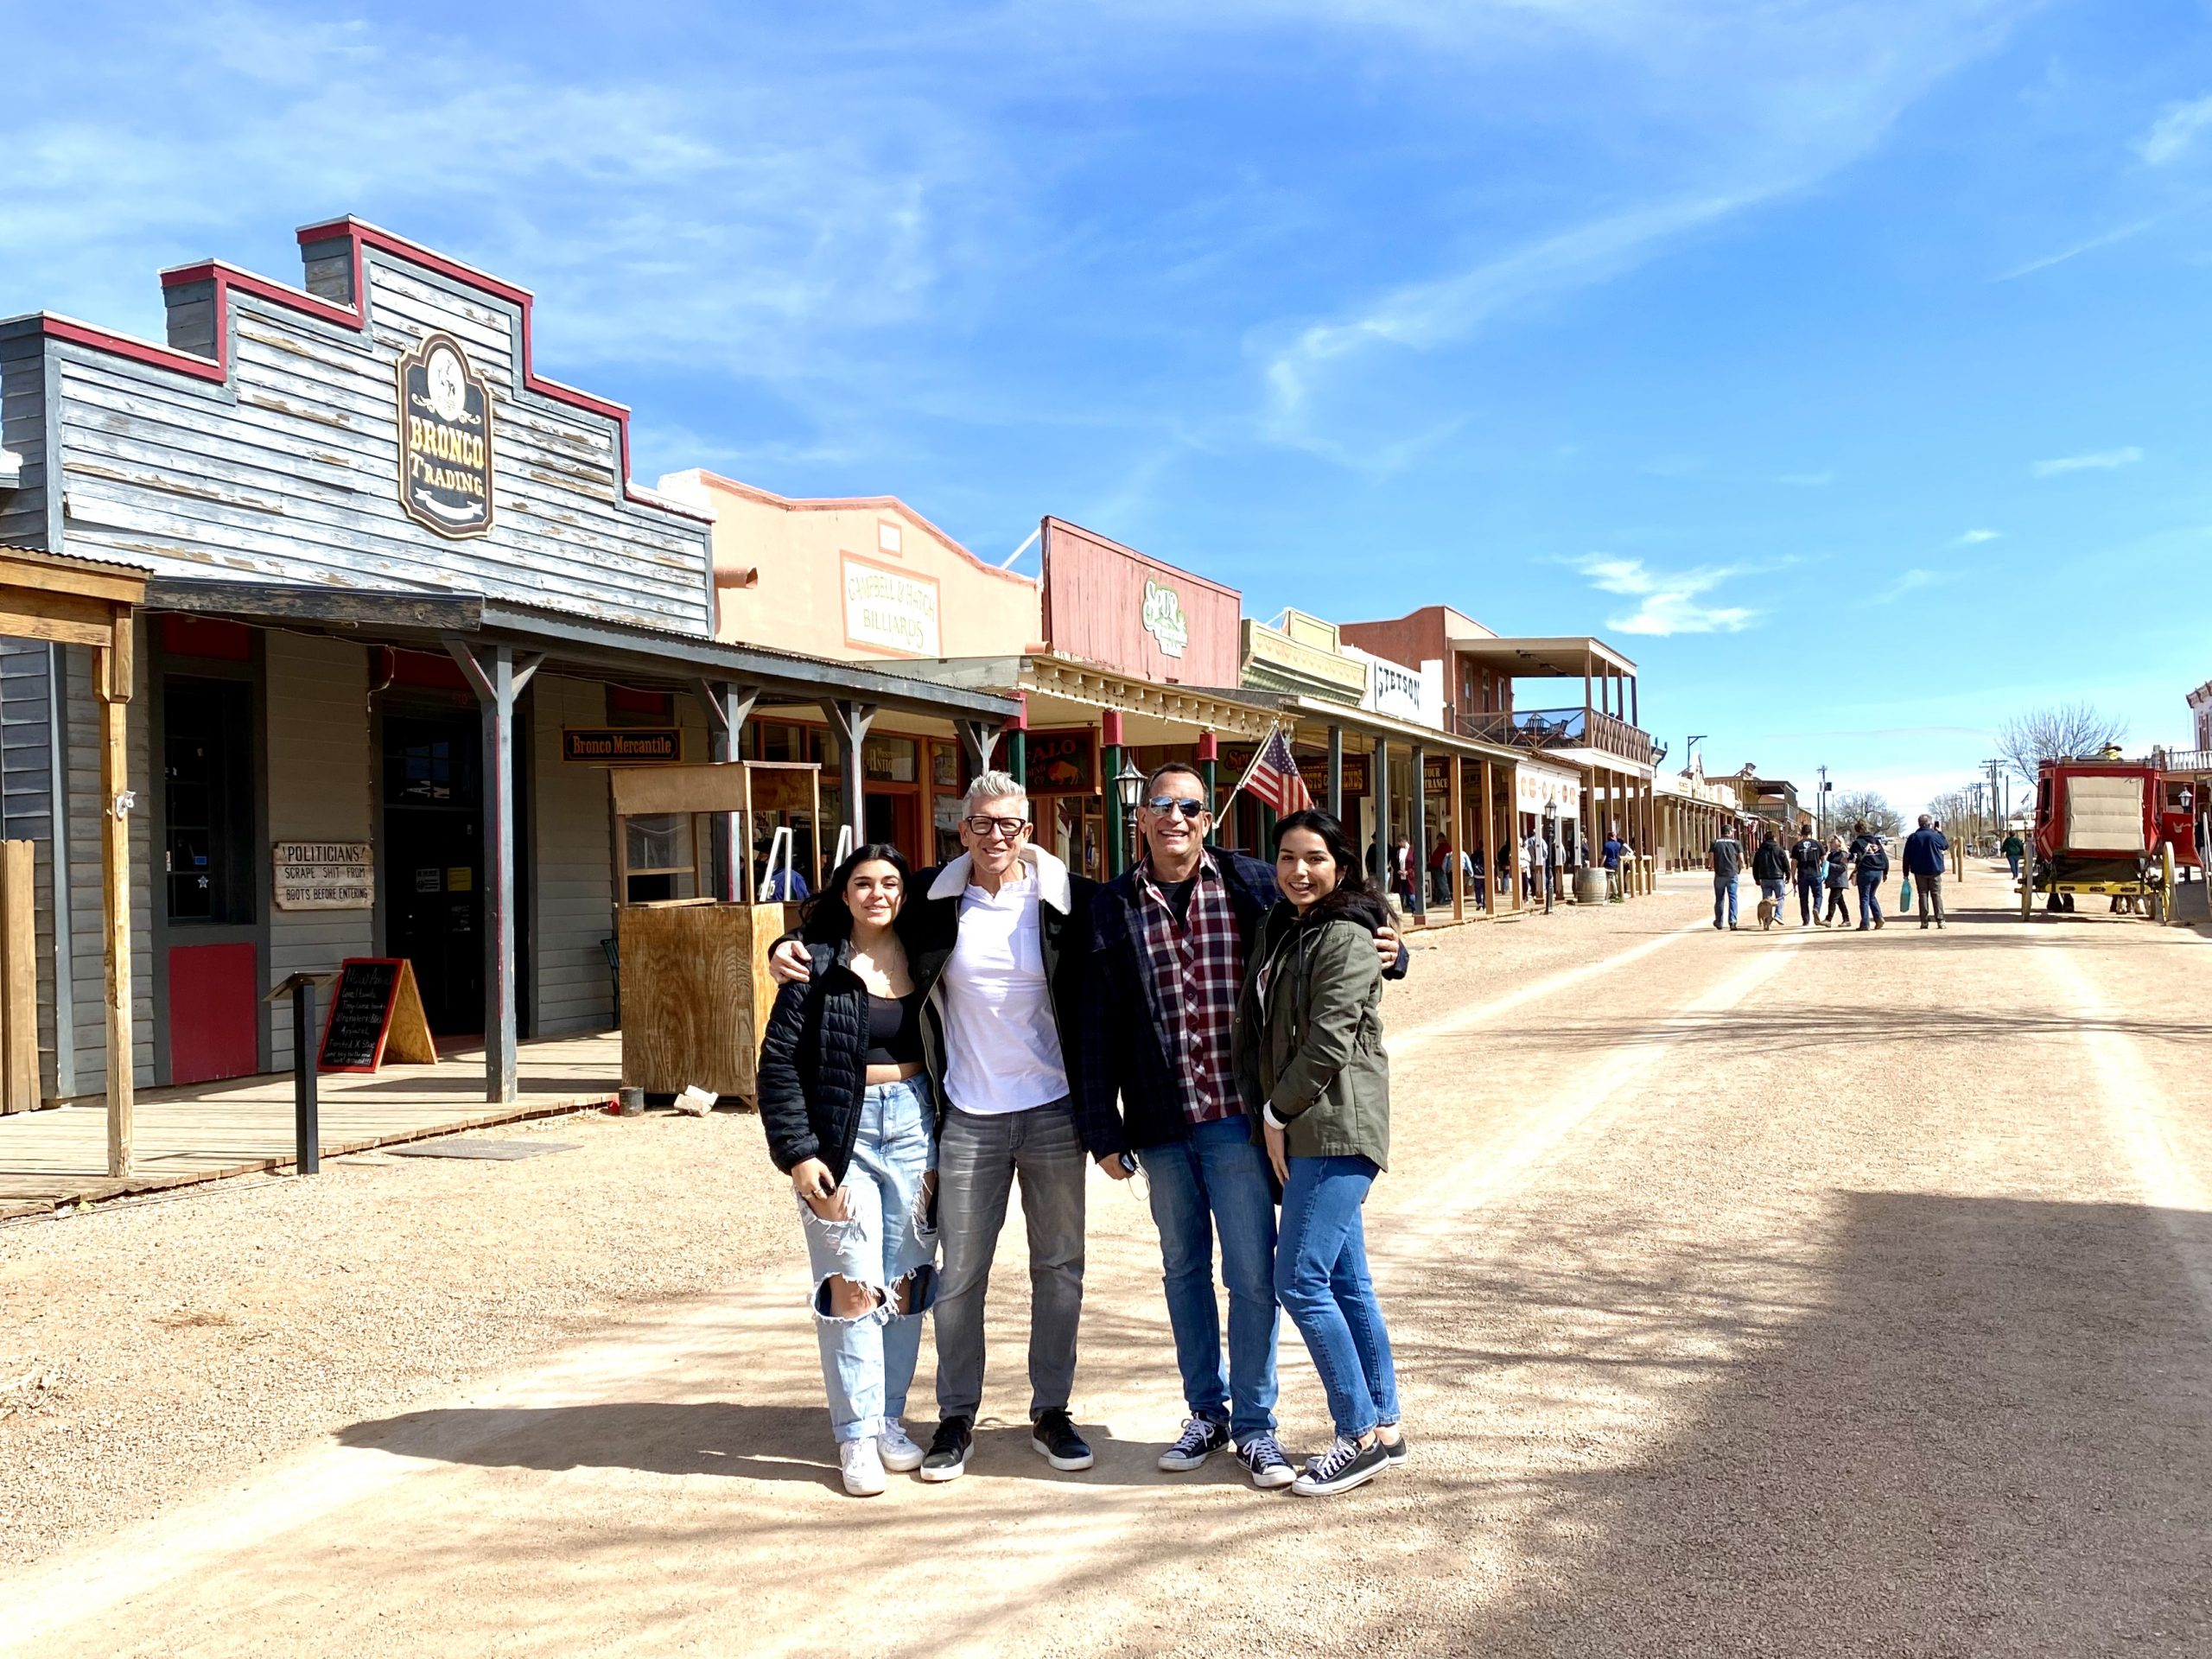 family with two dads and two daughters on the historic main avenue in the Old West town of Tombstone, Arizona